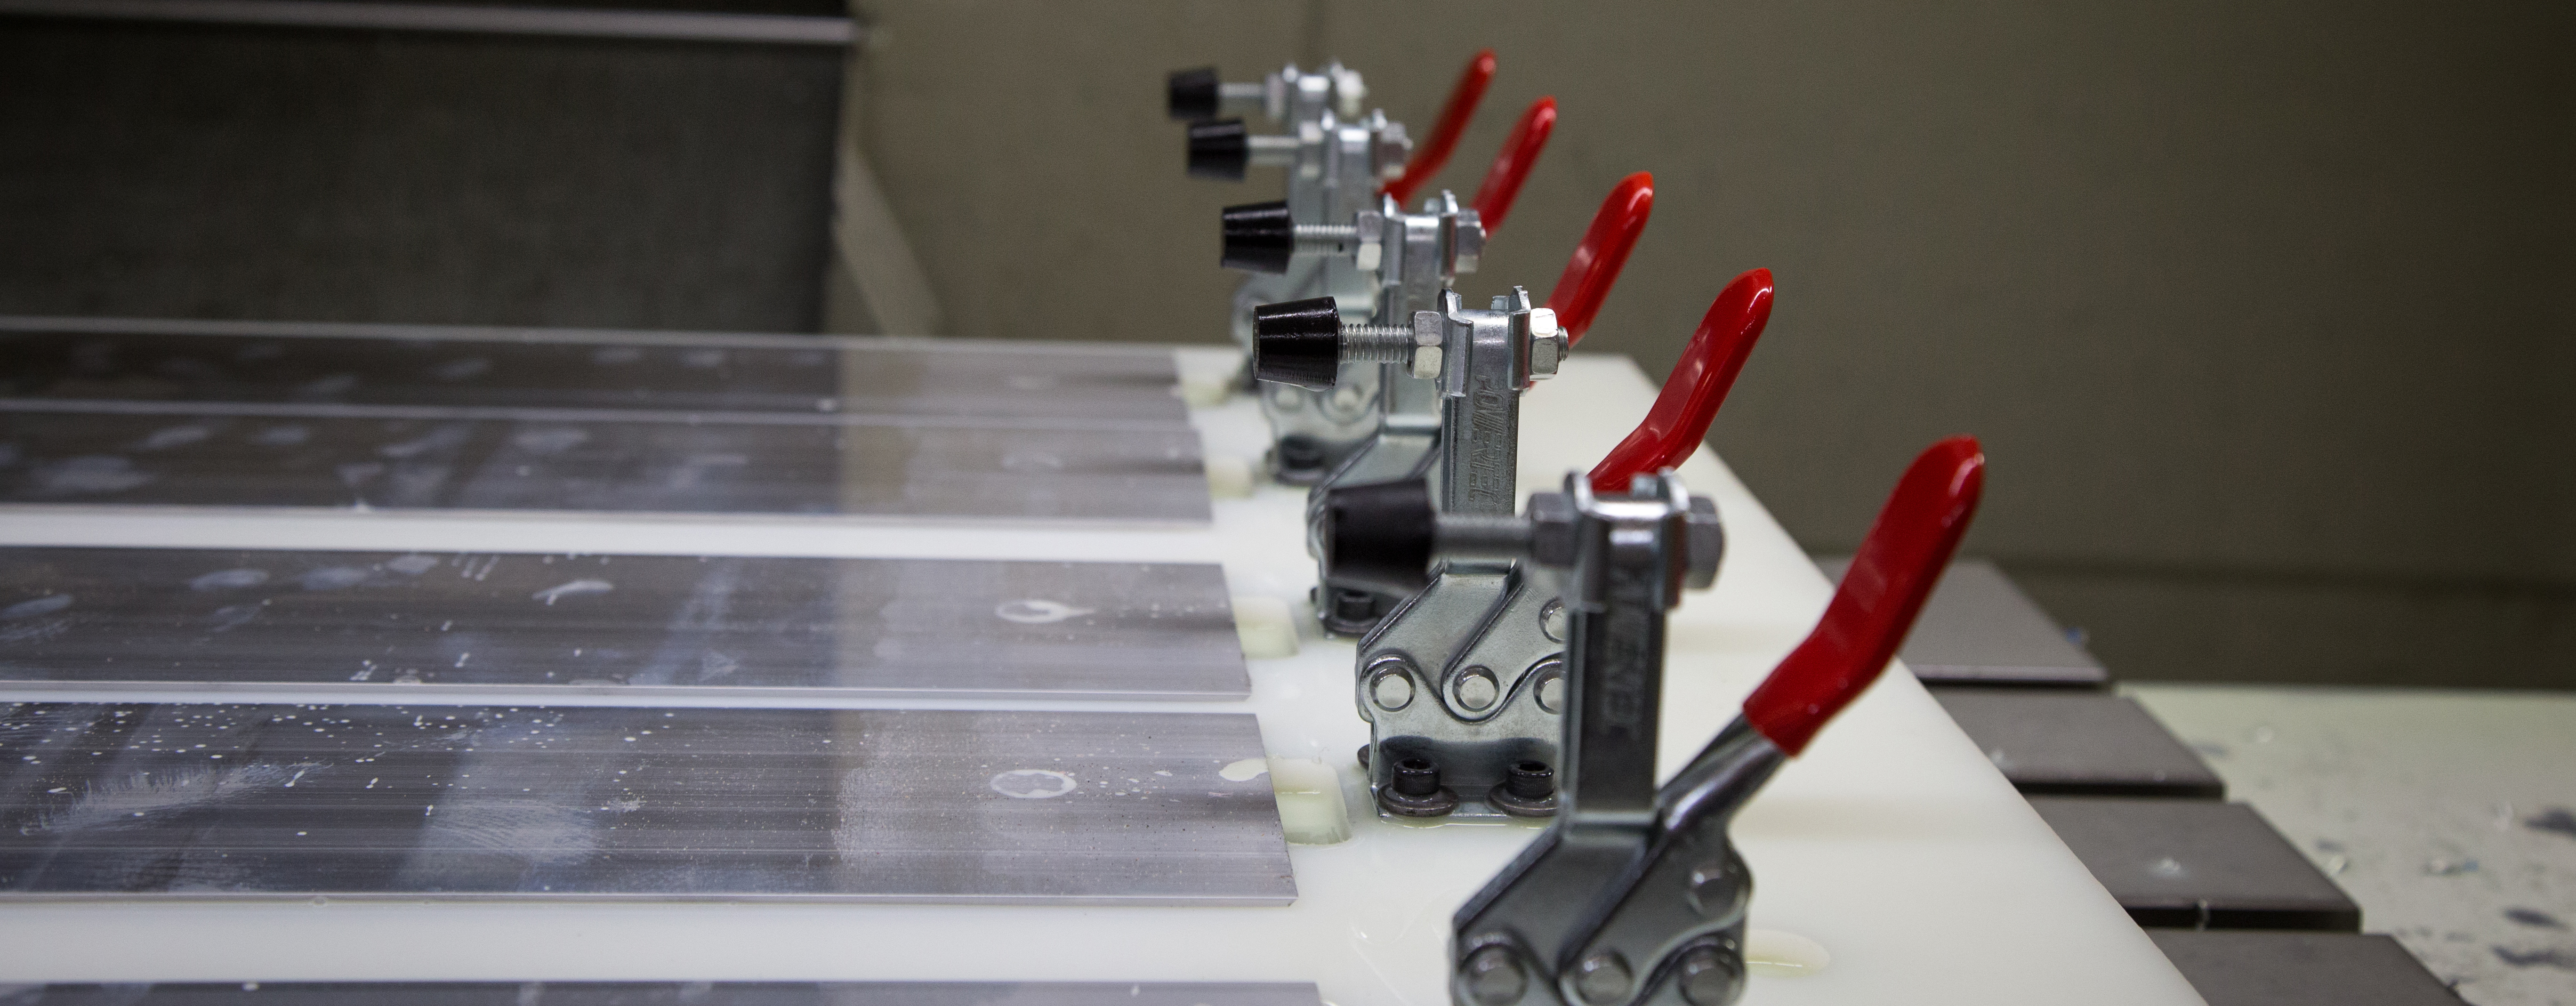 CNC Jig Fixture with Clamps